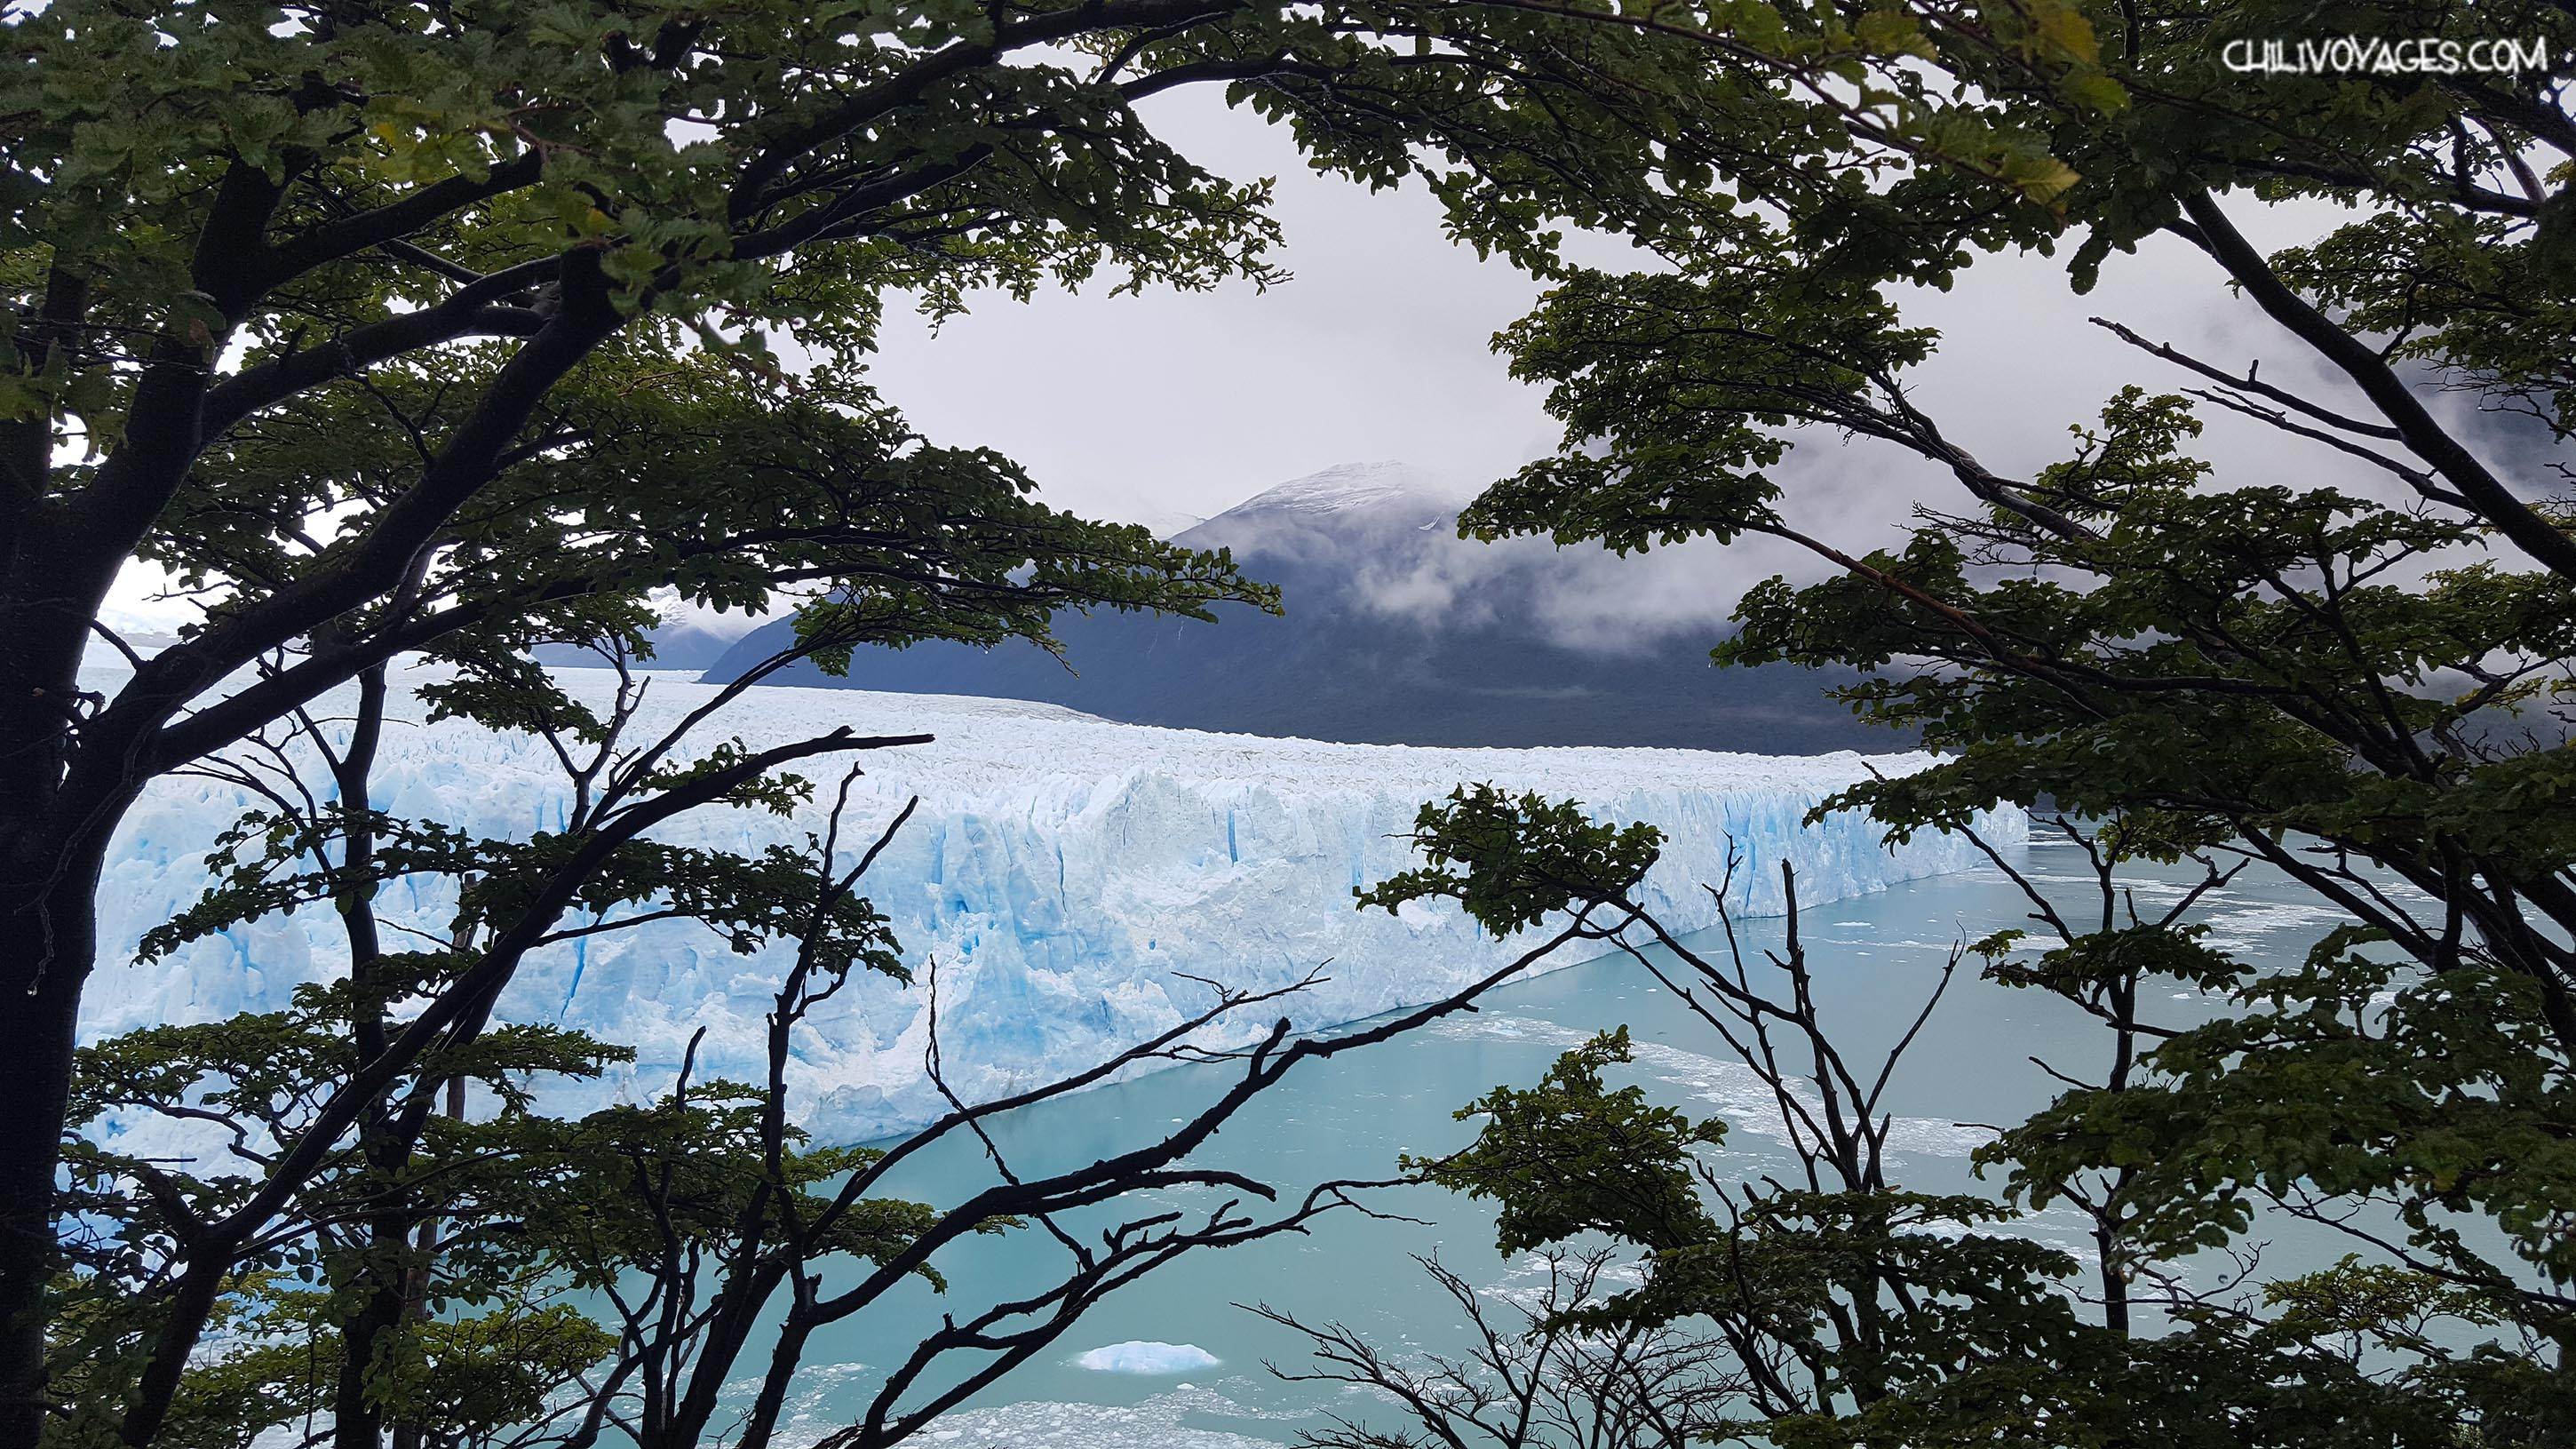 glacier perito moreno rencontre avec un gla on g ant chili voyages. Black Bedroom Furniture Sets. Home Design Ideas